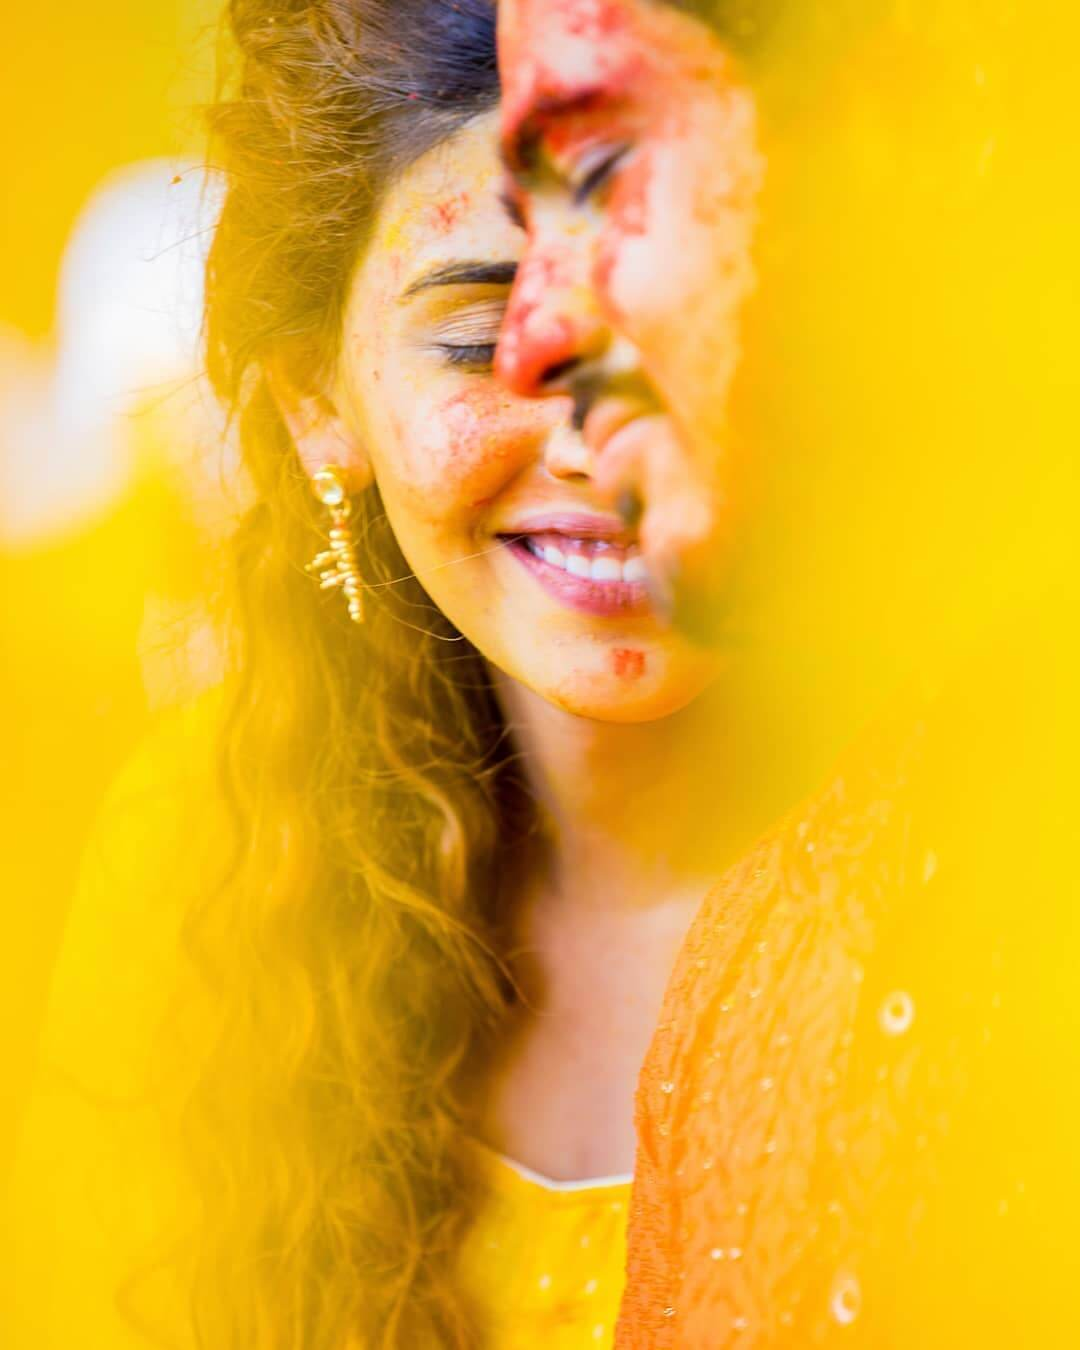 Holi Inspired Pre-Wedding Shoot Ideas - Celebrate Your Love with Colors!